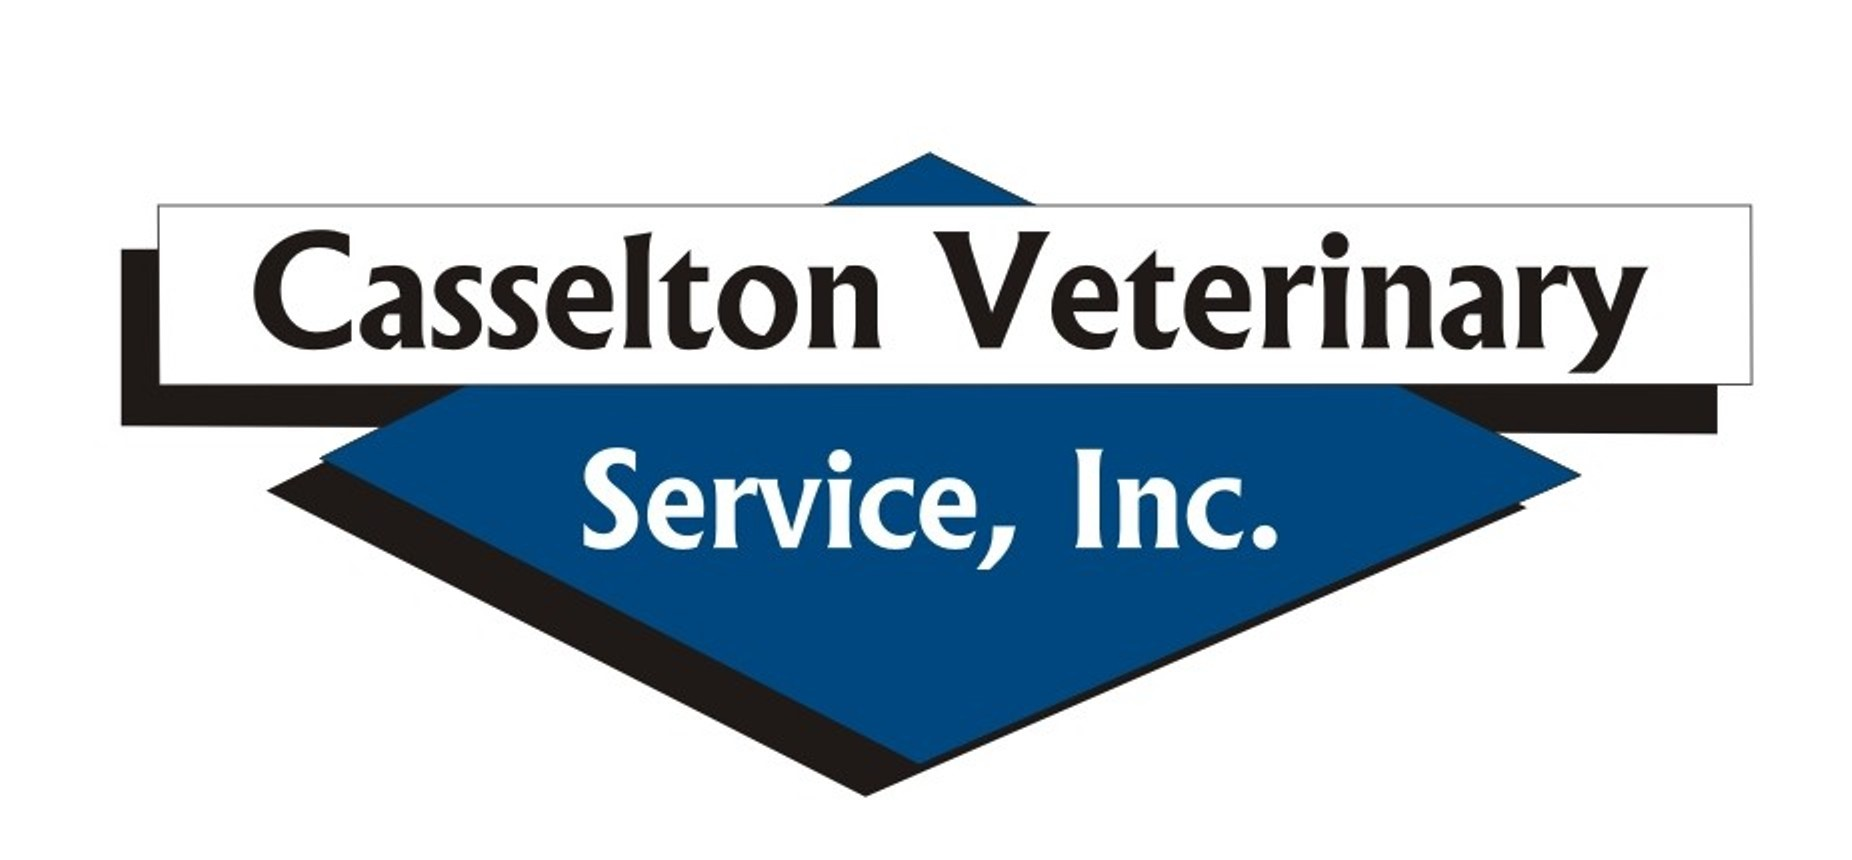 Casselton Veterinary Service, Inc.